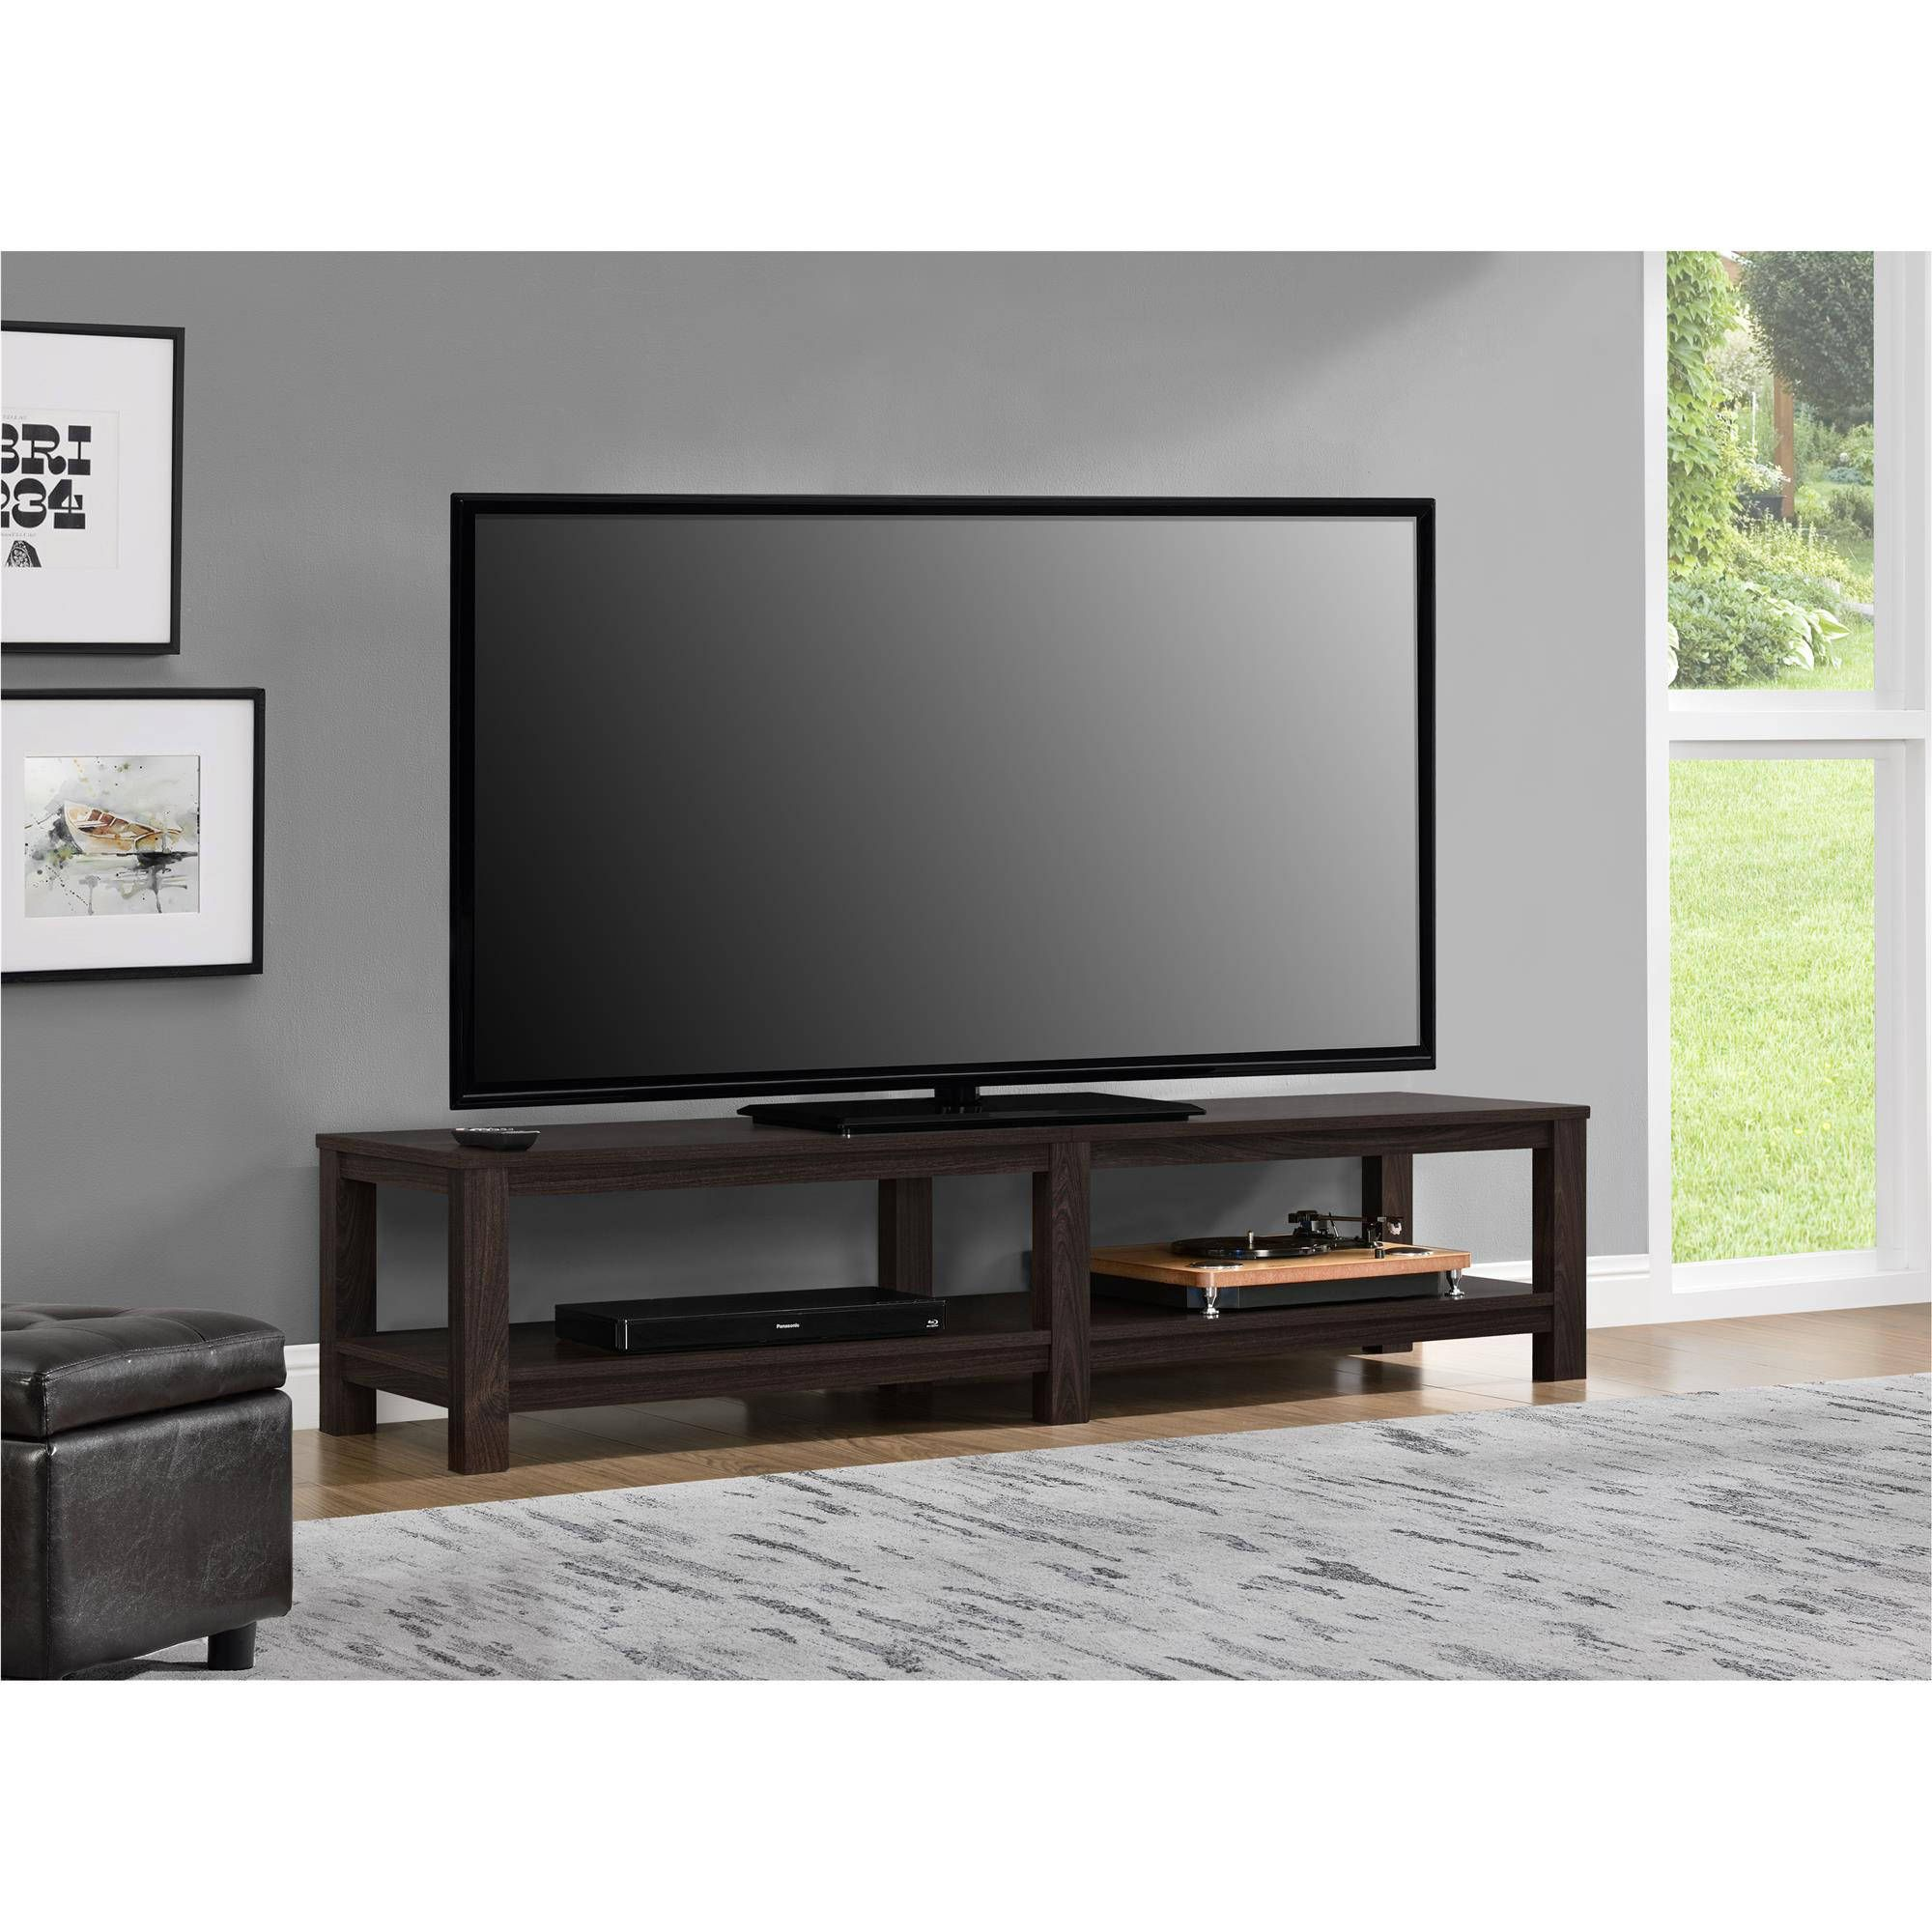 Pin By Shantel Appelt On Home Sweet Home Entertainment Stand